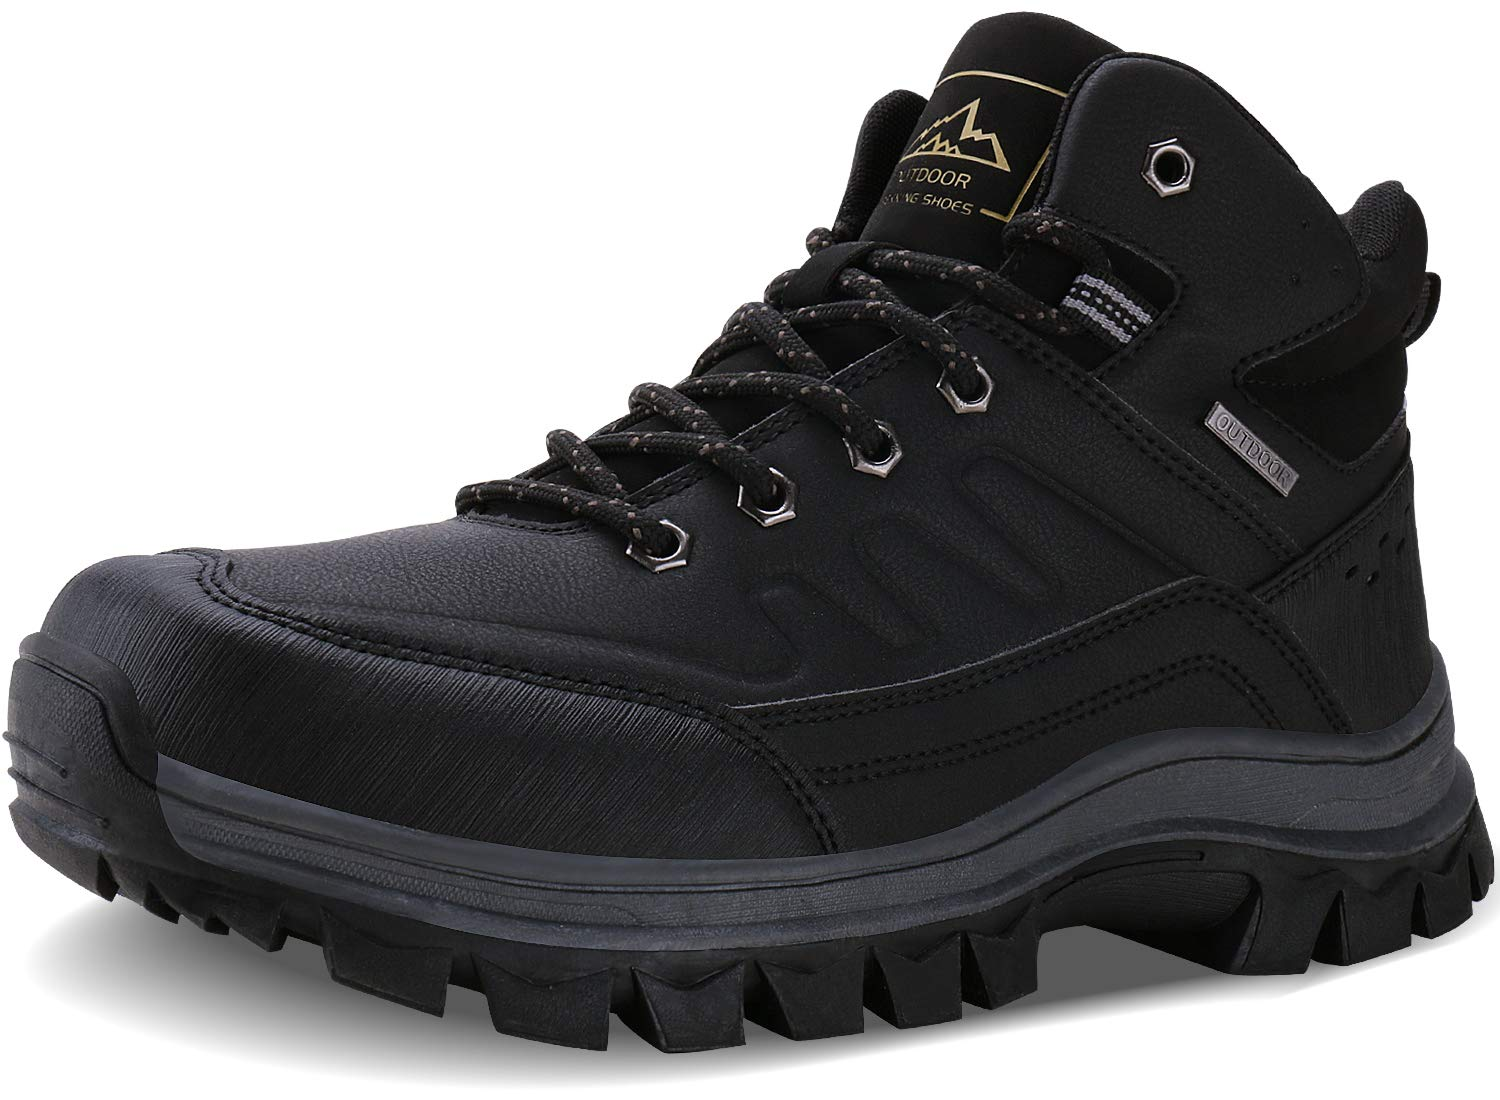 Caitin Men's Insulated Cold-Weather Boots Durable Hiking Boots by Caitin